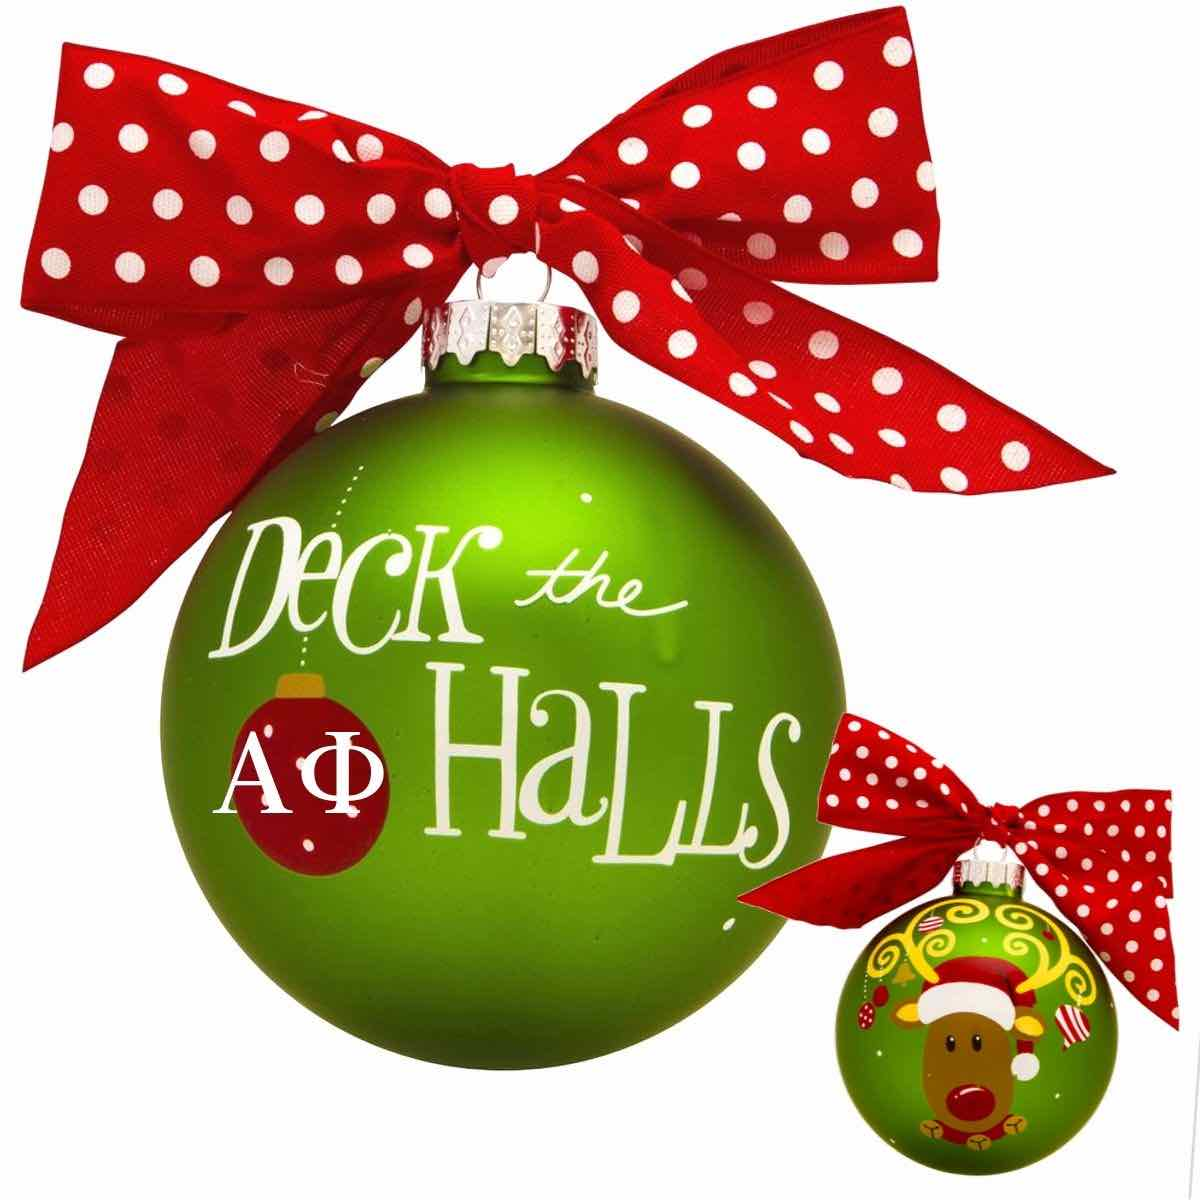 Deck the Halls Greek Letter Sorority Ornaments